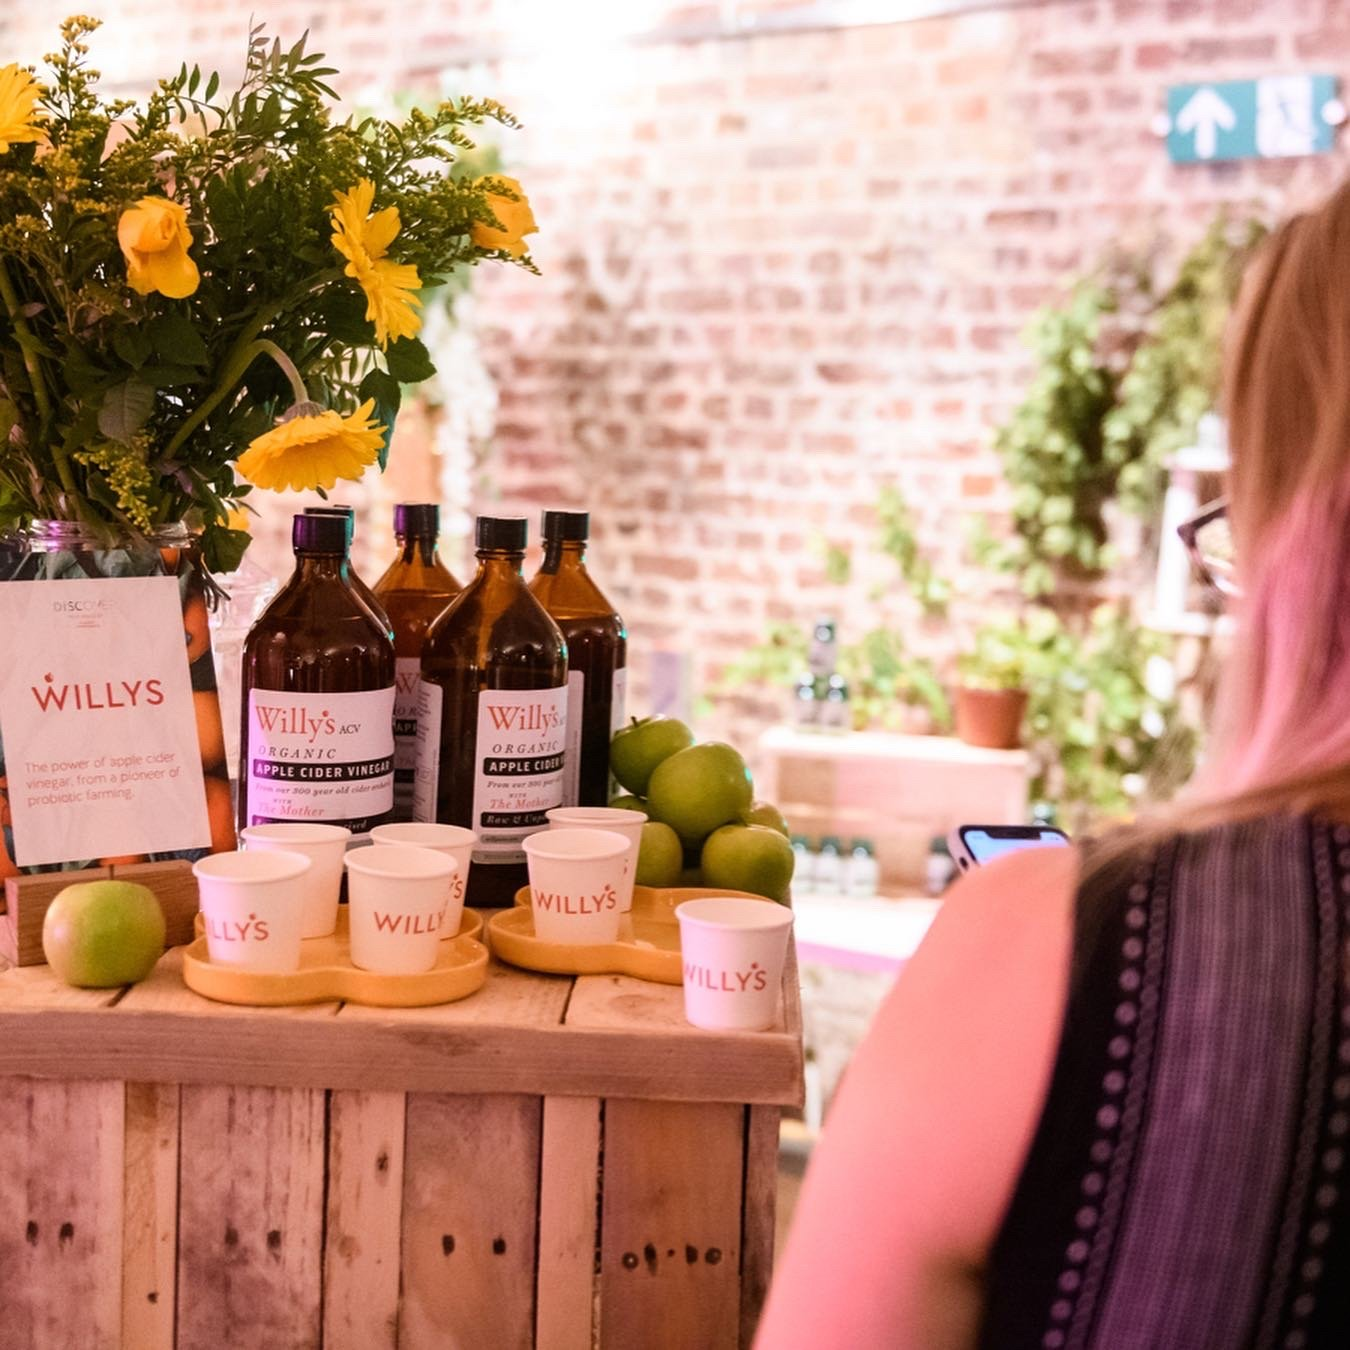 using pallets to create zero waste event displays